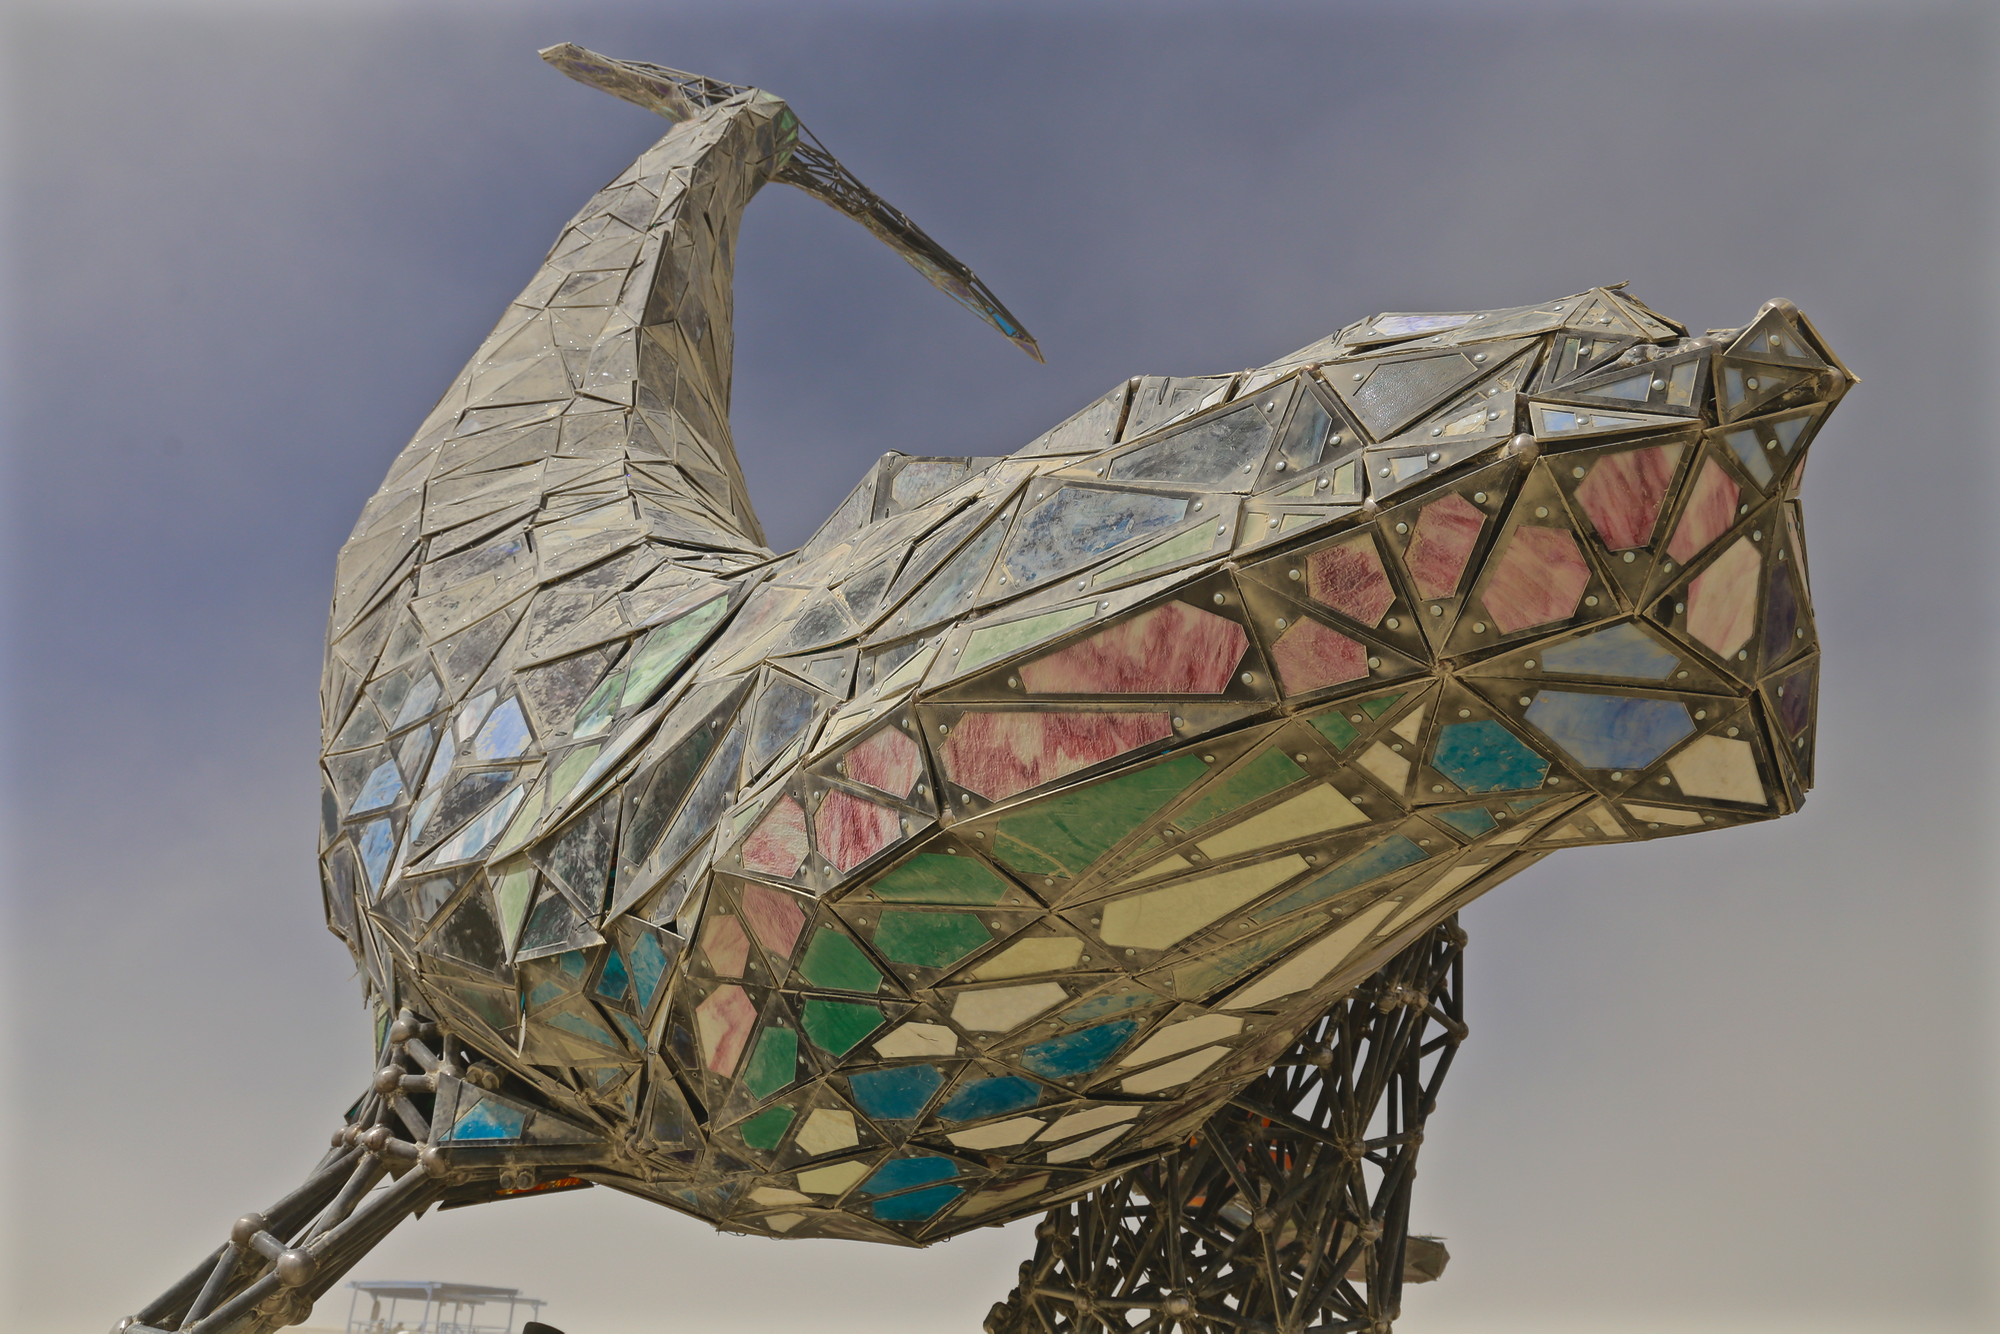 ... Space Whale | Burning Man 2016! | Lost Coast Outpost | Humboldt County